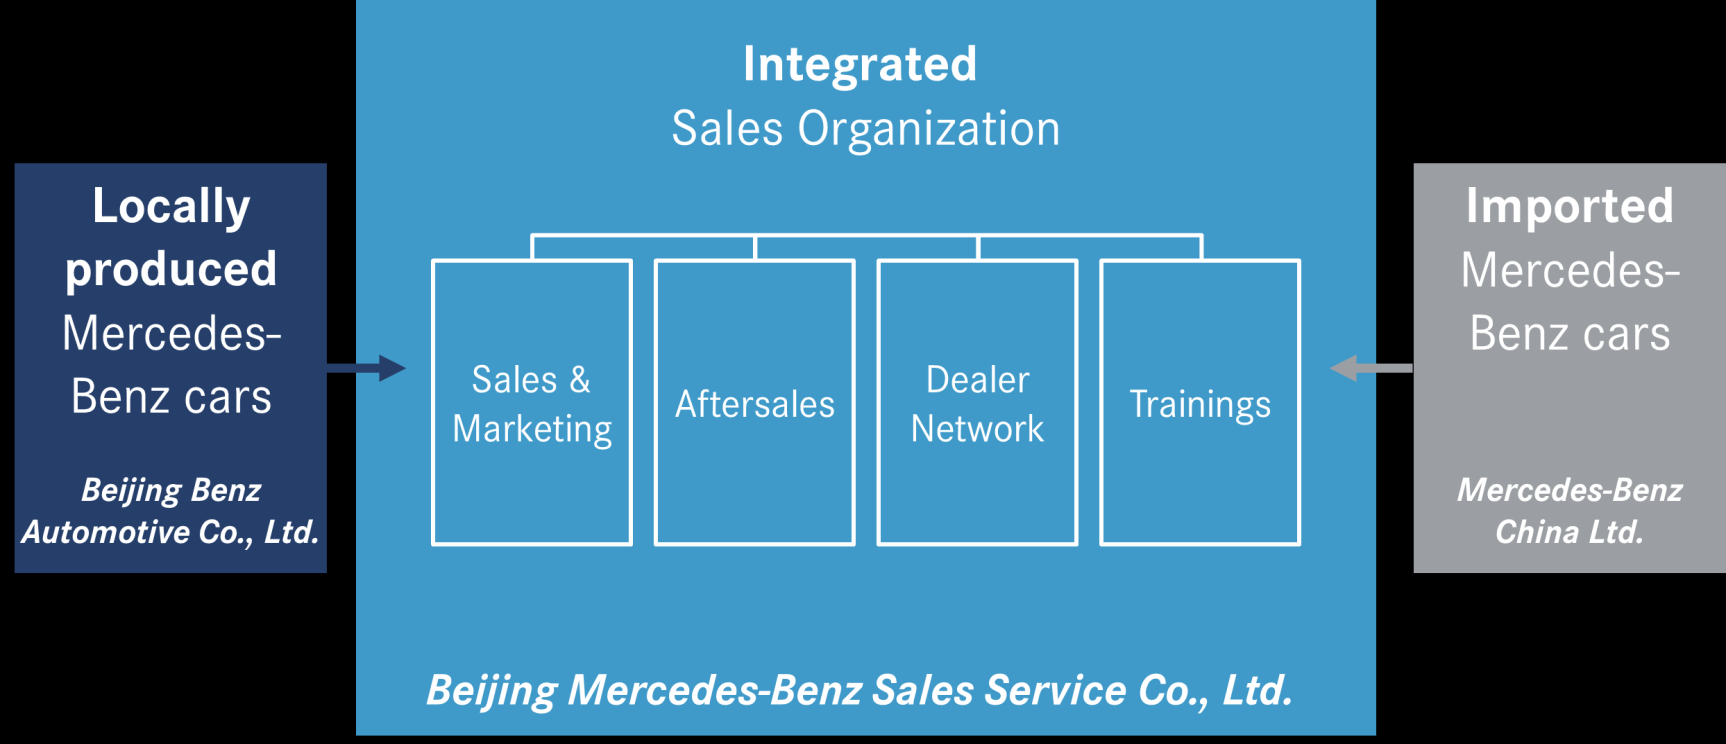 37 Divisions Mercedes-Benz Cars Integrated sales organization